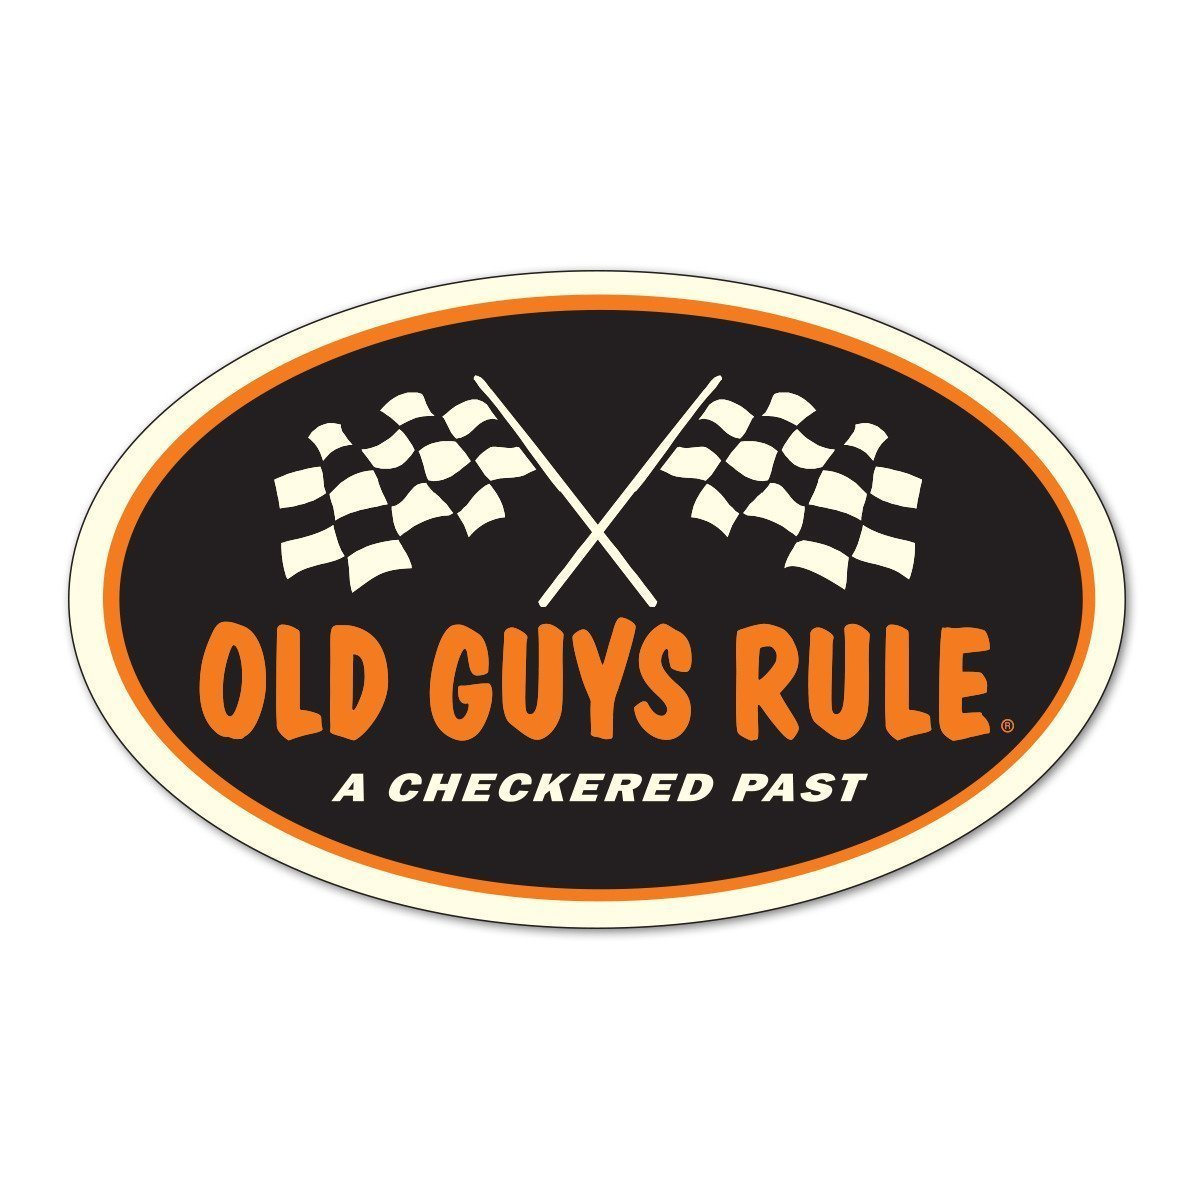 Old Guys Rule - Sticker - Checkered Past